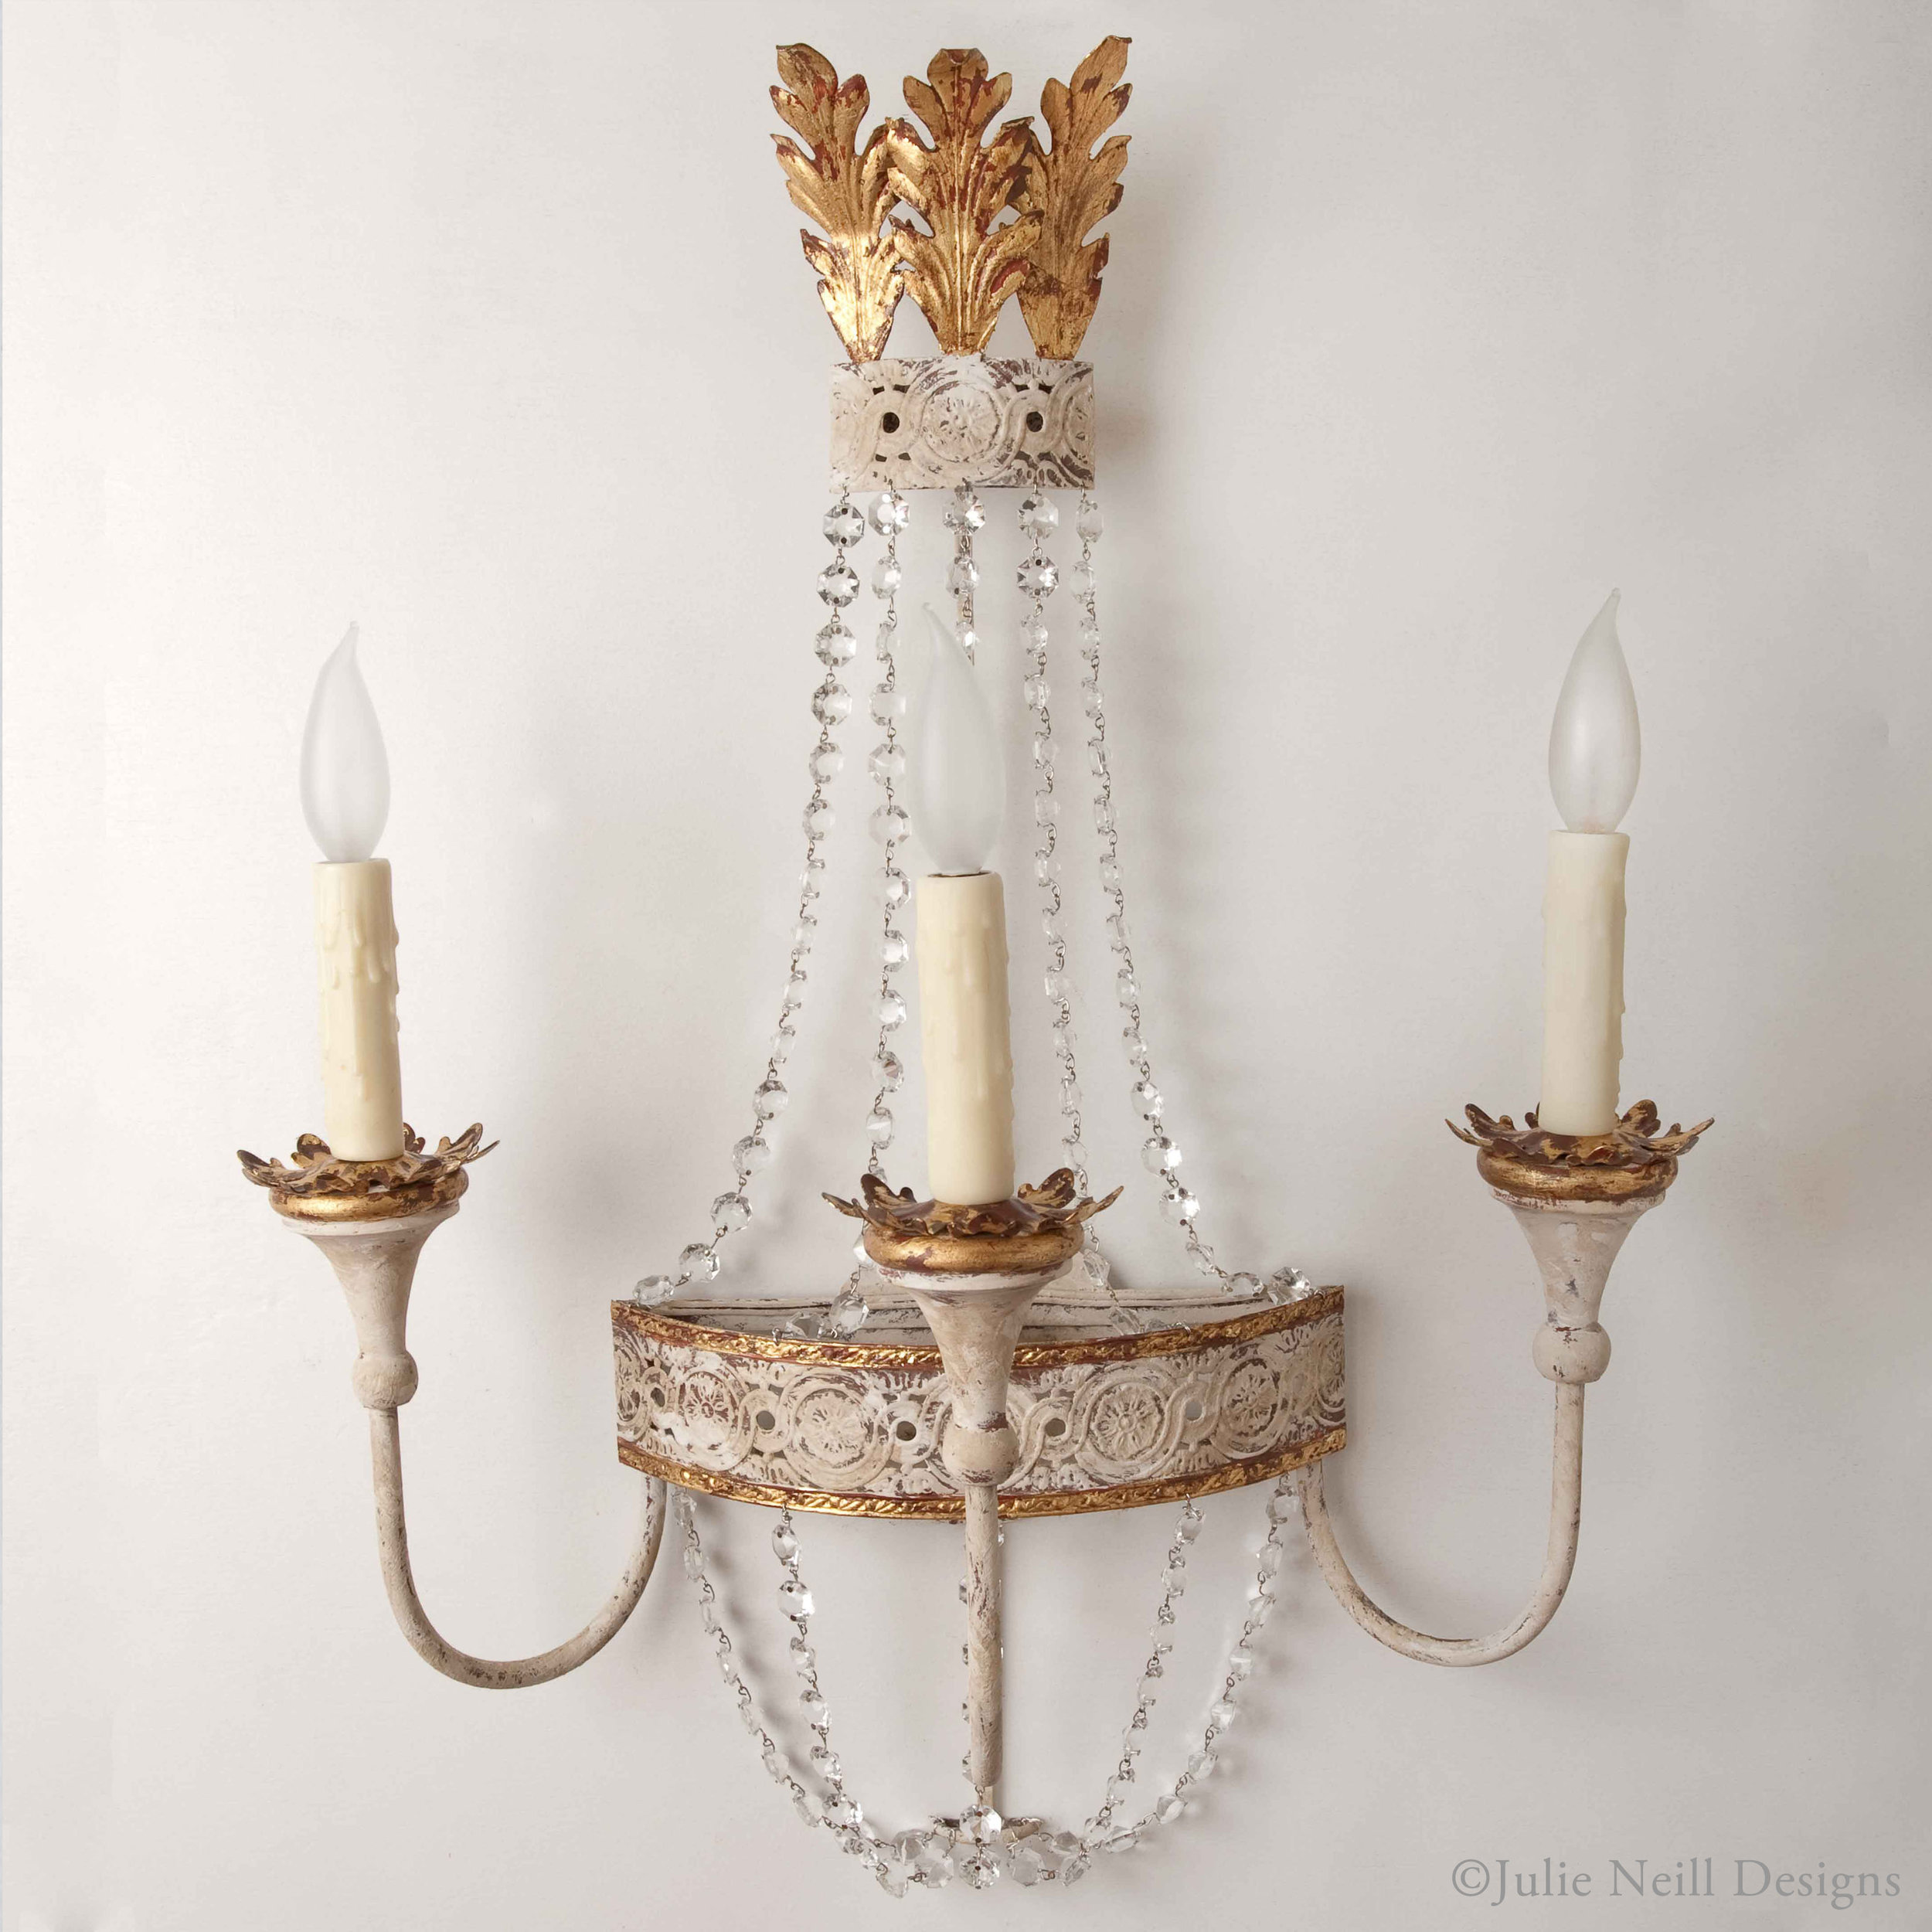 Lizette_Sconce_JulieNeillDesigns